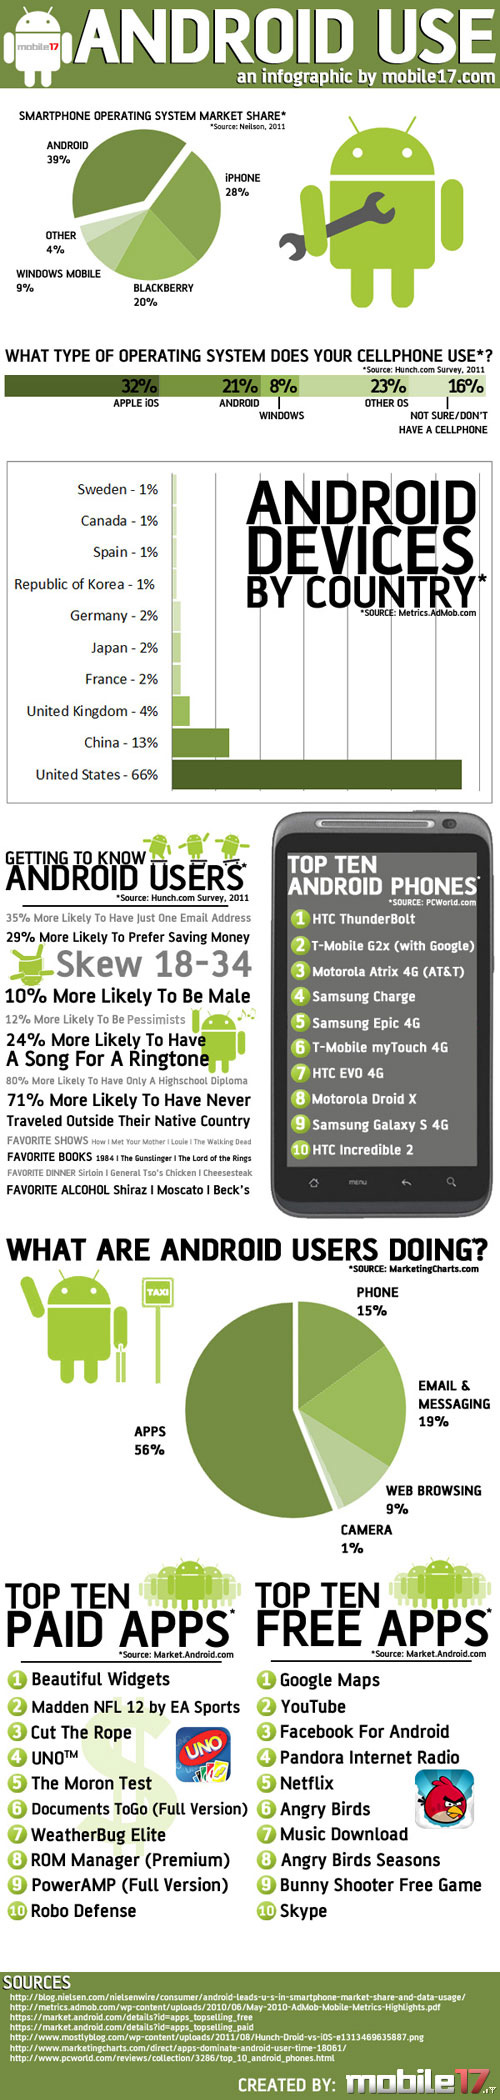 Android Use